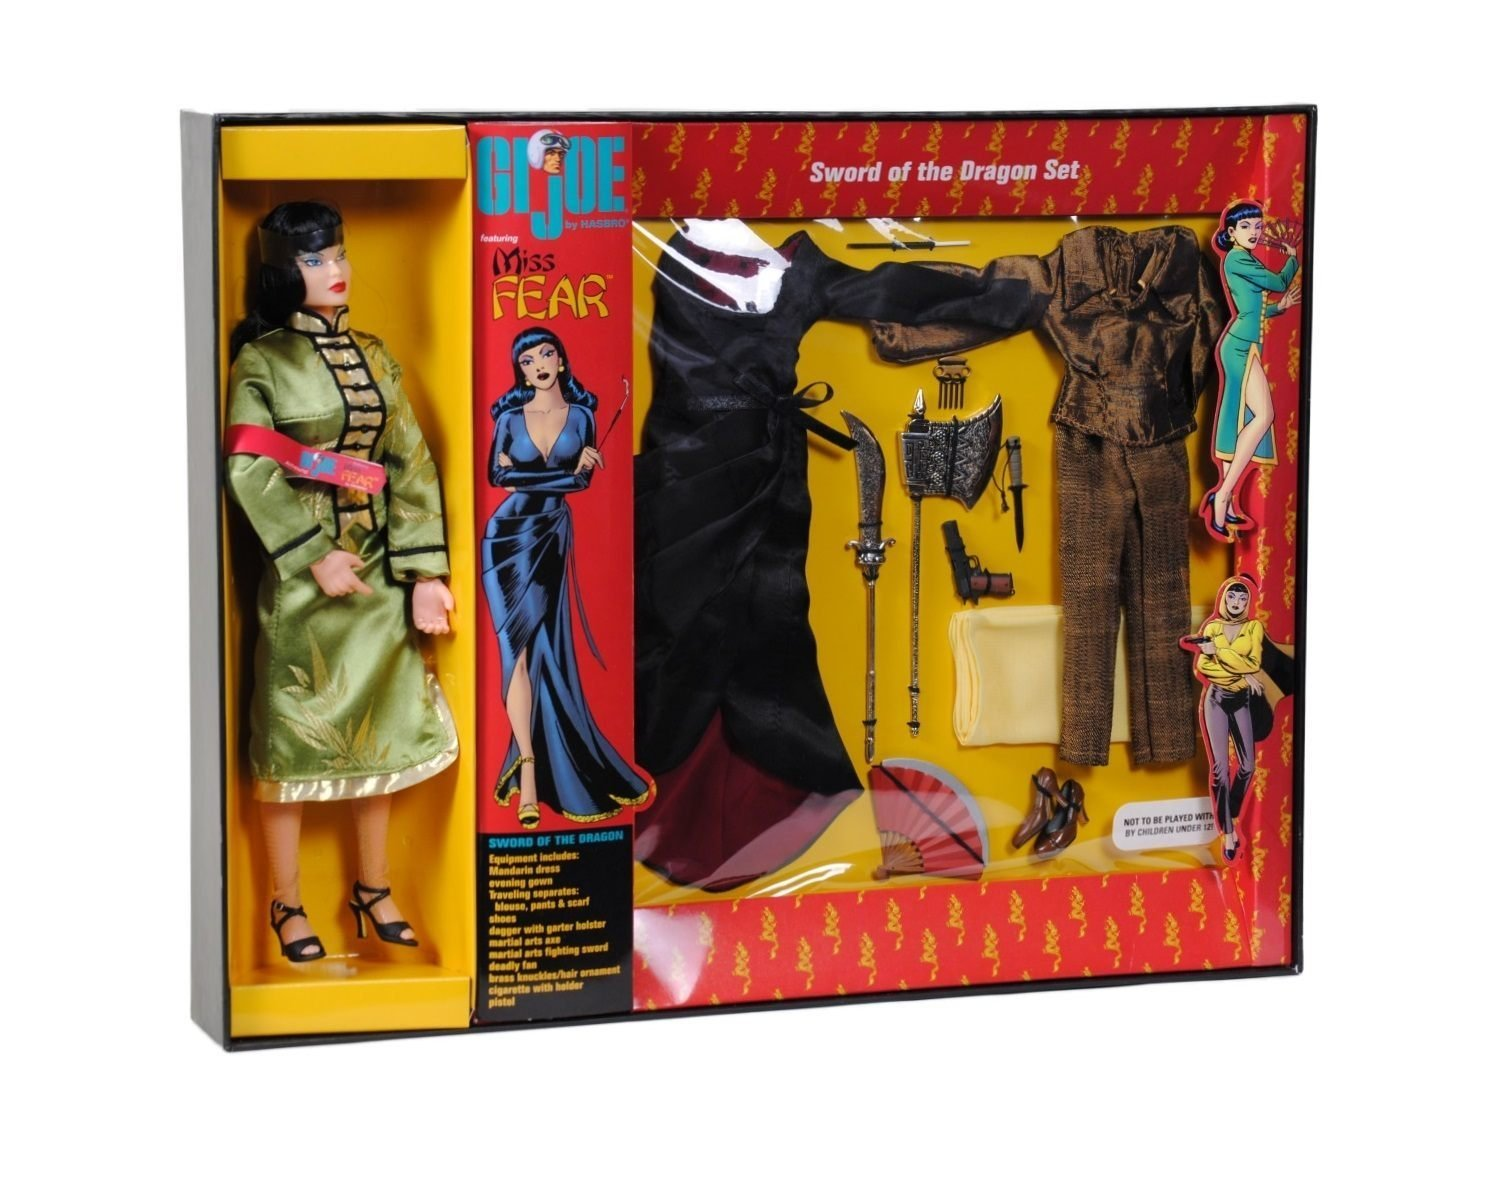 Limited to 3,500 Sets Dreams /& Visions GI Joe Miss Fear 12 Action Figure Gift Set